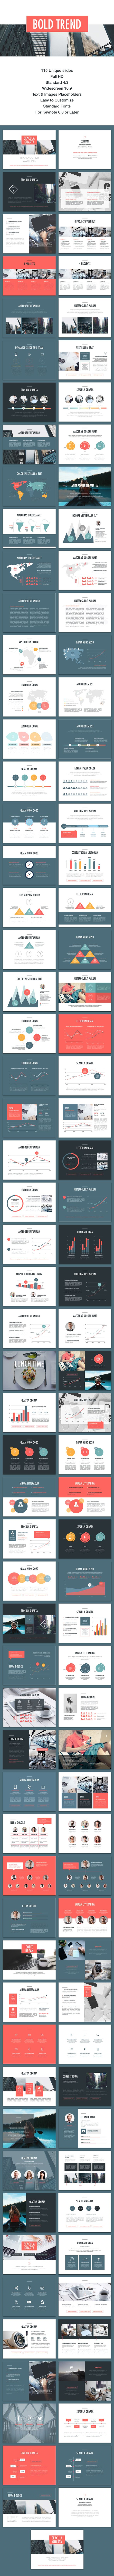 Bold Trend Keynote Slides Template. Download here…